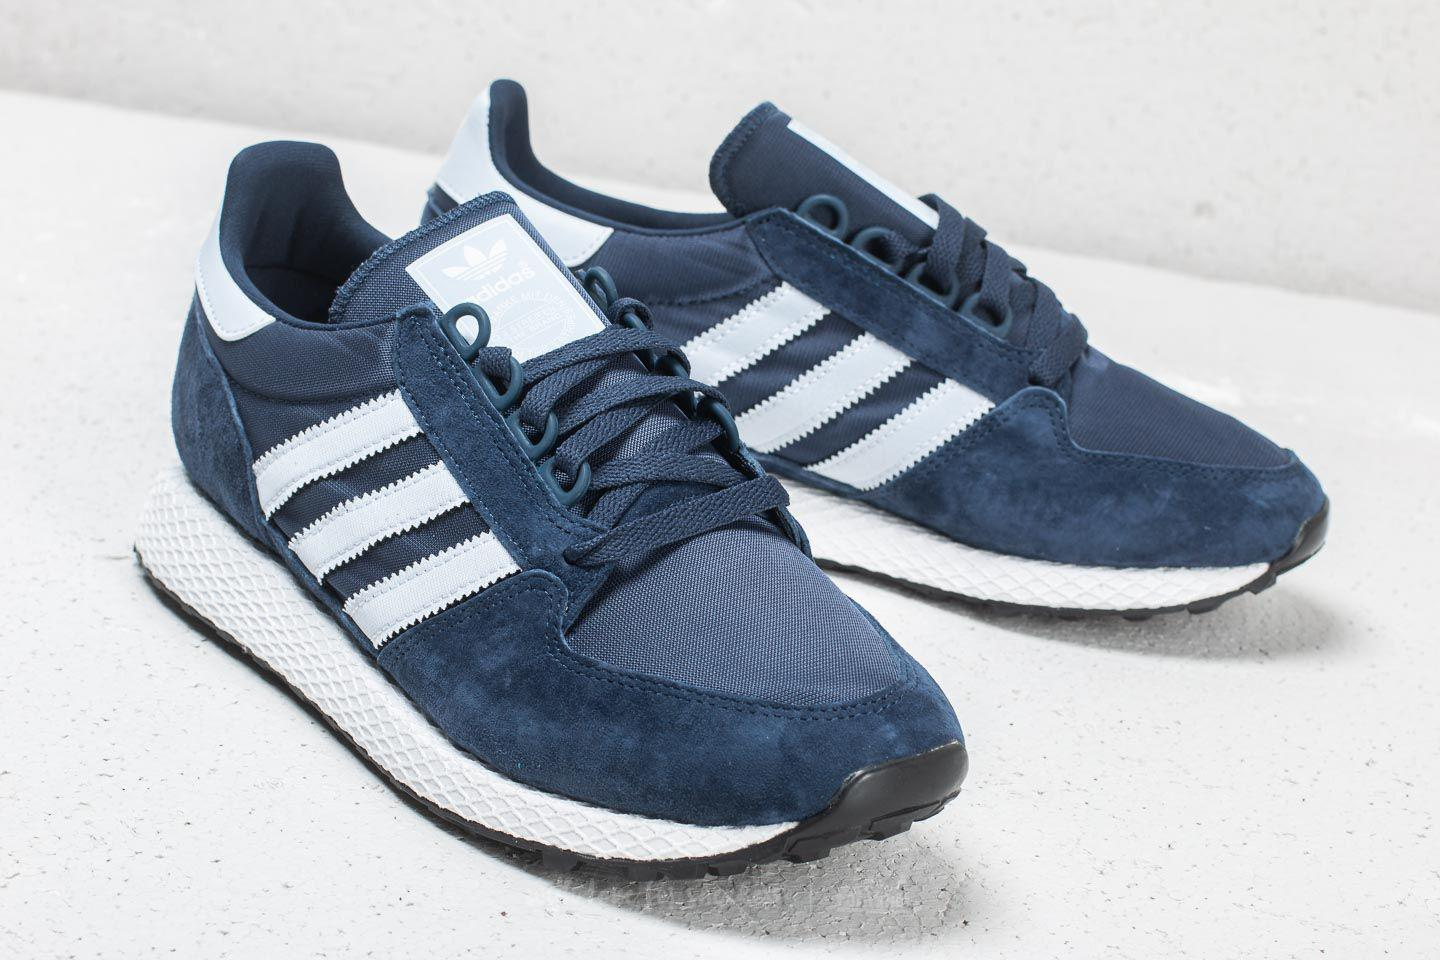 reputable site d4429 09d6a Lyst - adidas Originals Adidas Forest Grove Collegiate Navy